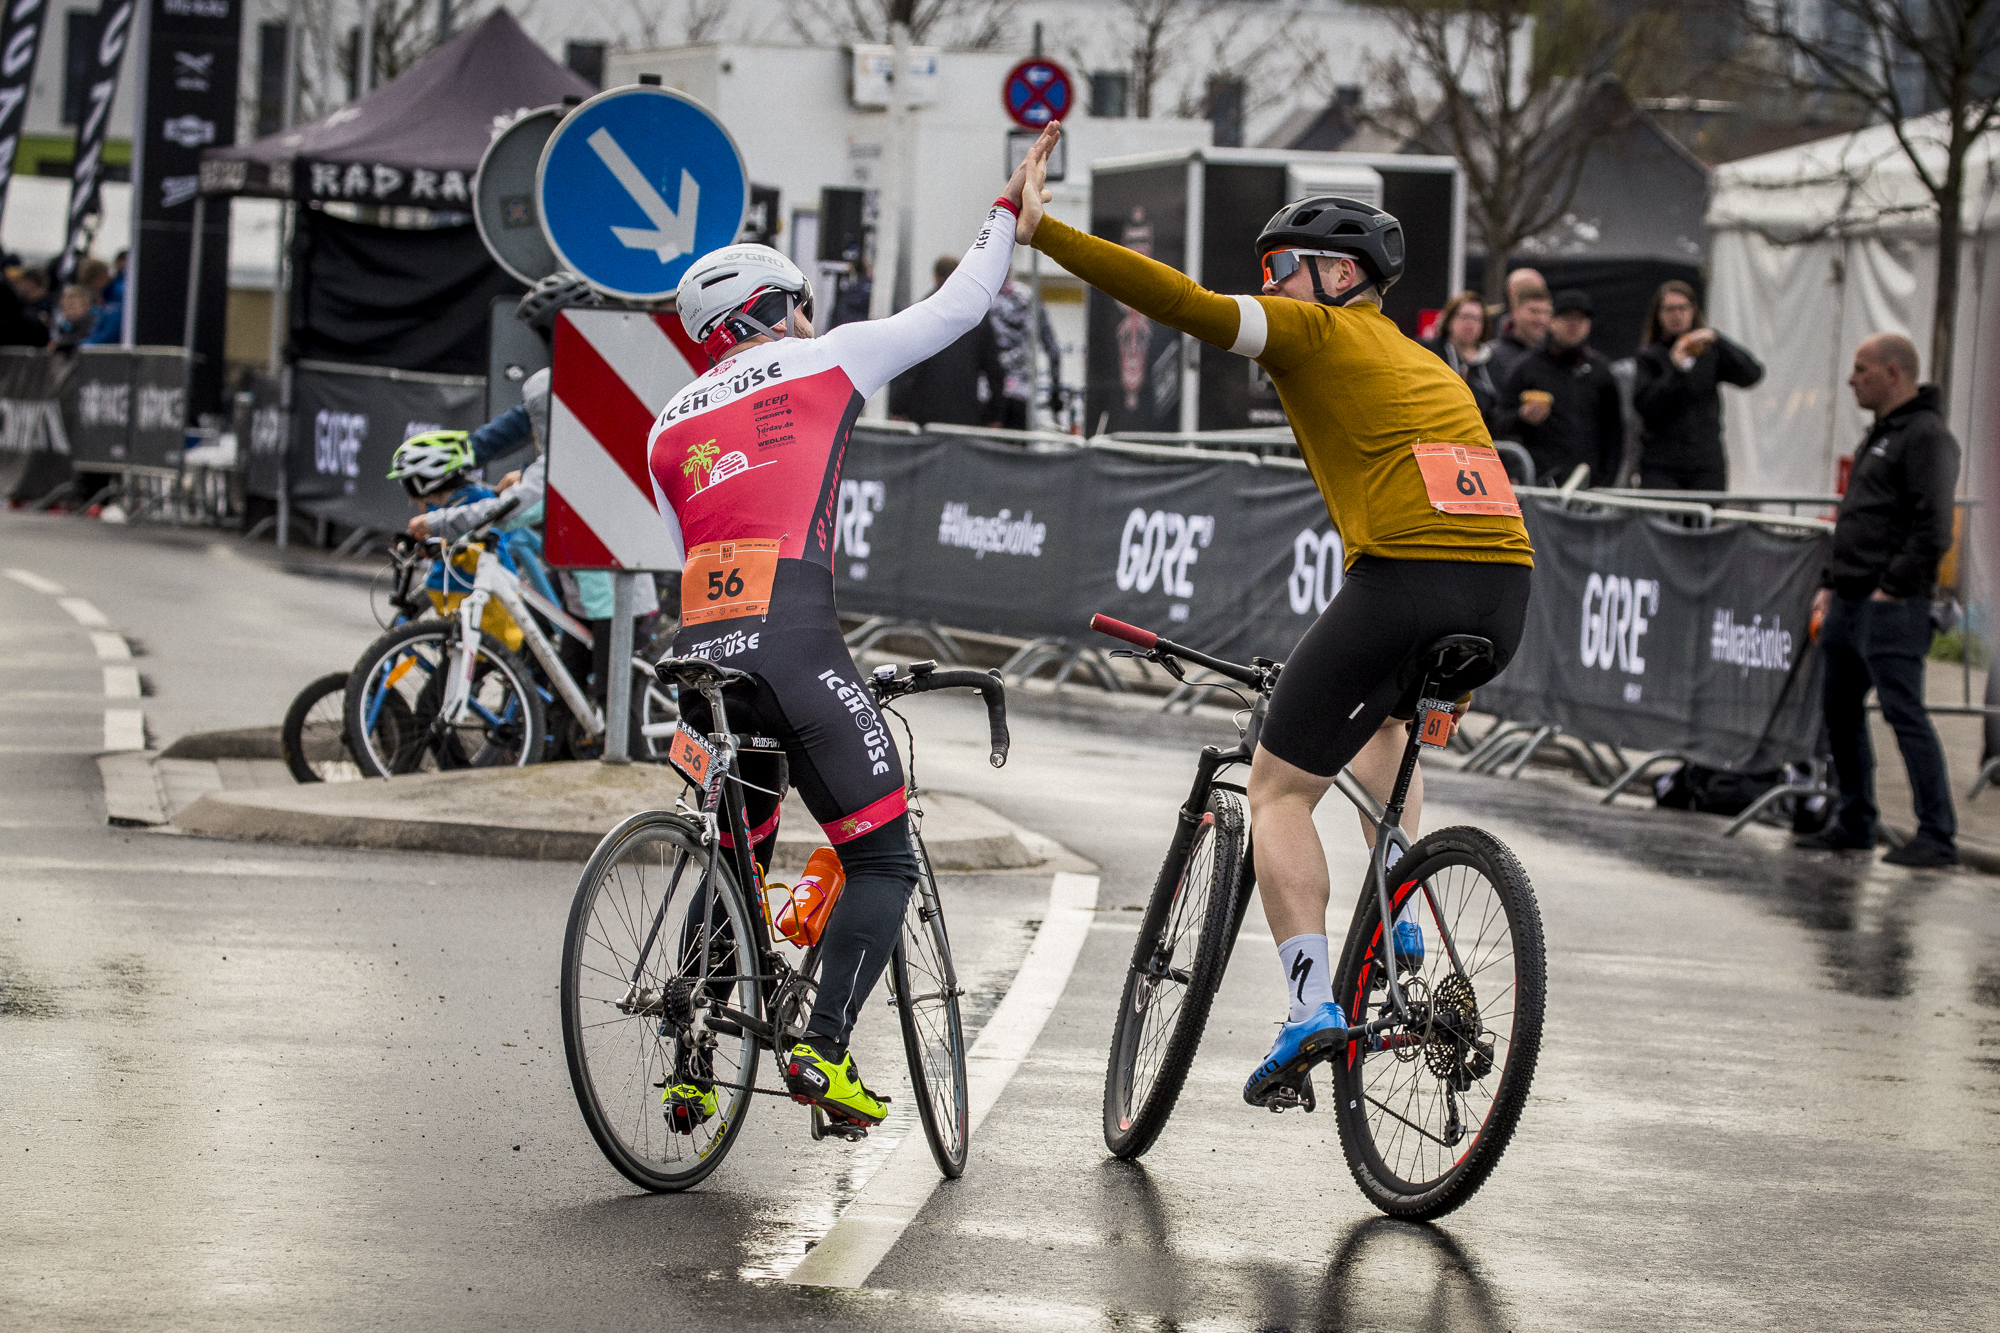 RadRace_Canyon_battle_2019_Arturs_Pavlovs (47 of 188).jpg